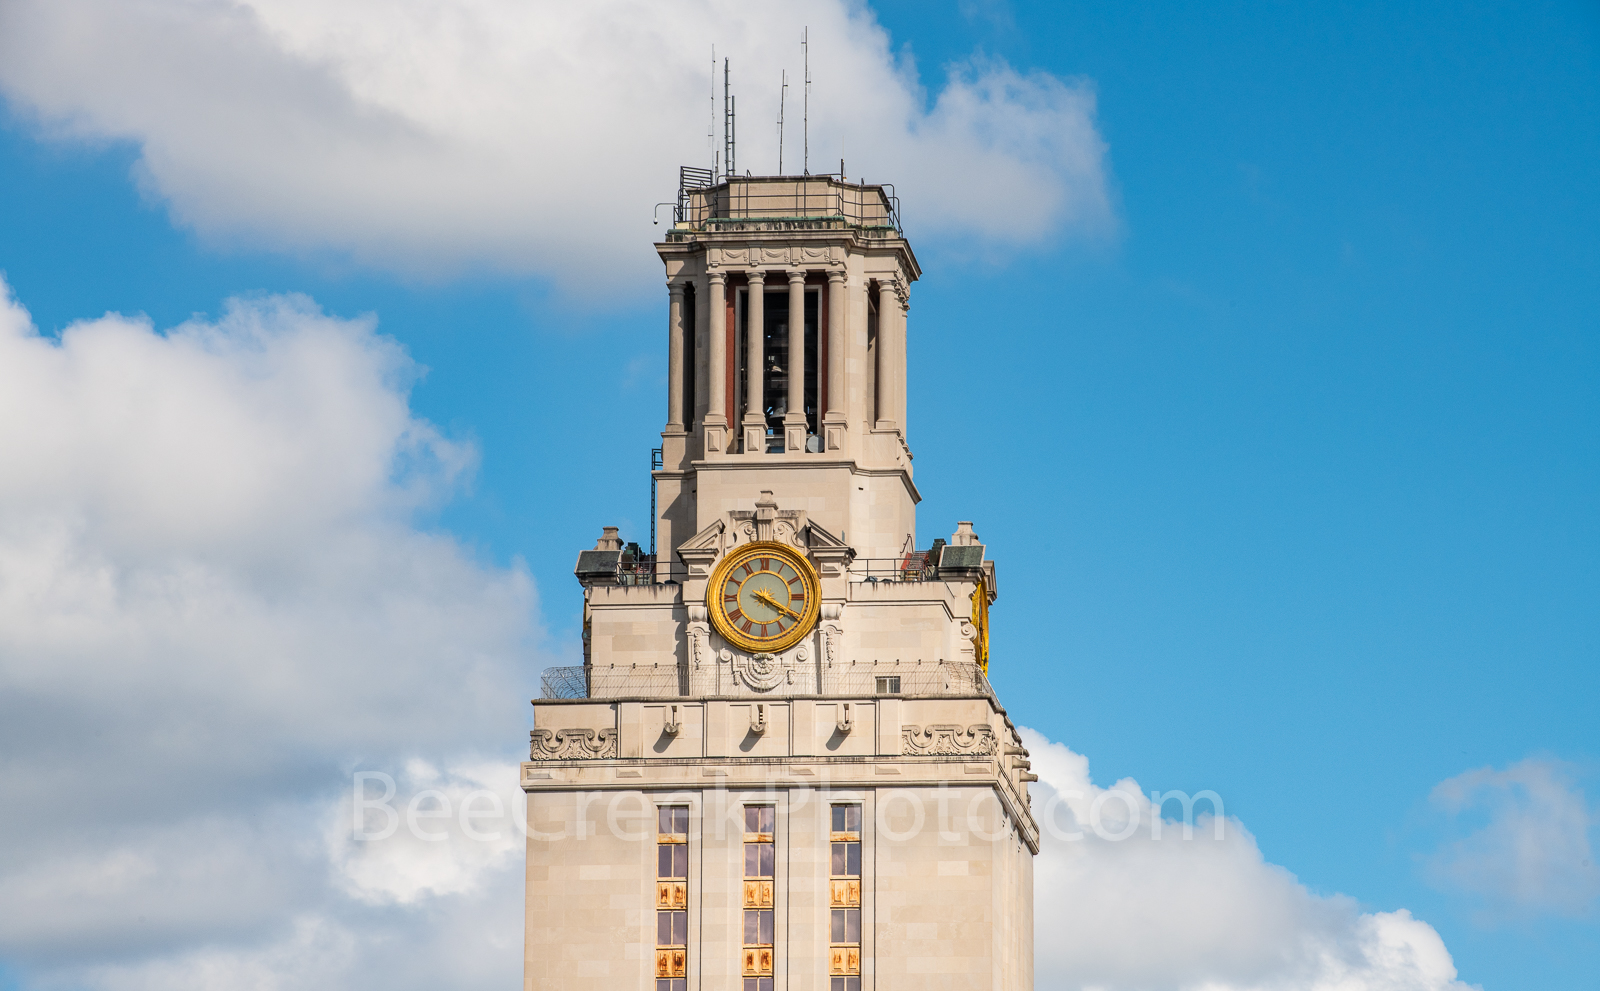 Austin, UT, UT Tower, day, daytime, downtown, cityscape, close up, landmark, clock, images of texas, UT clock,, photo